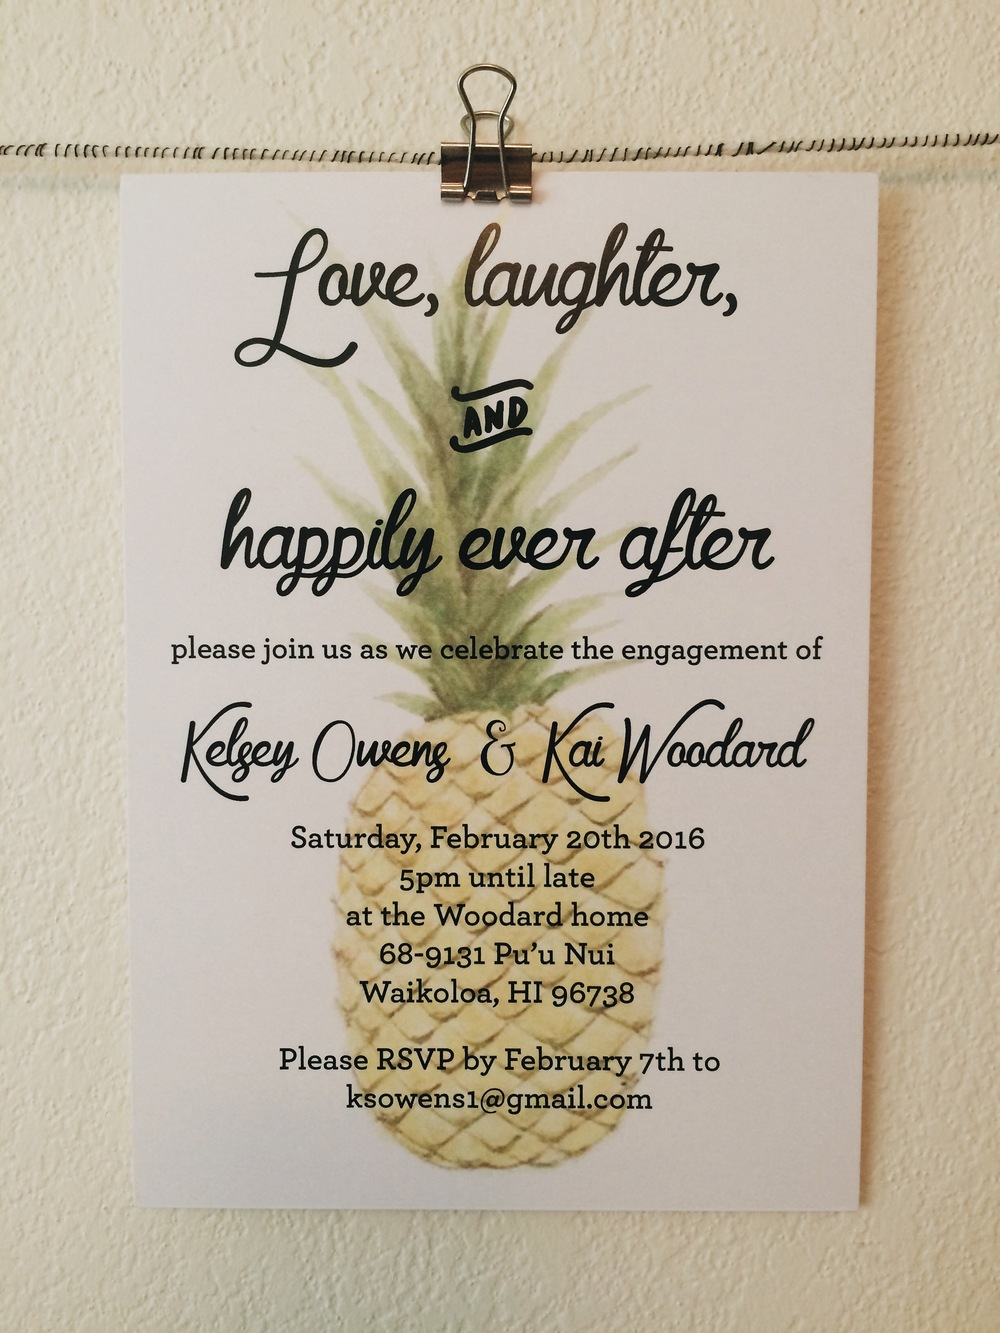 Original watercolor engagement party invites printed on heavy stock paper.